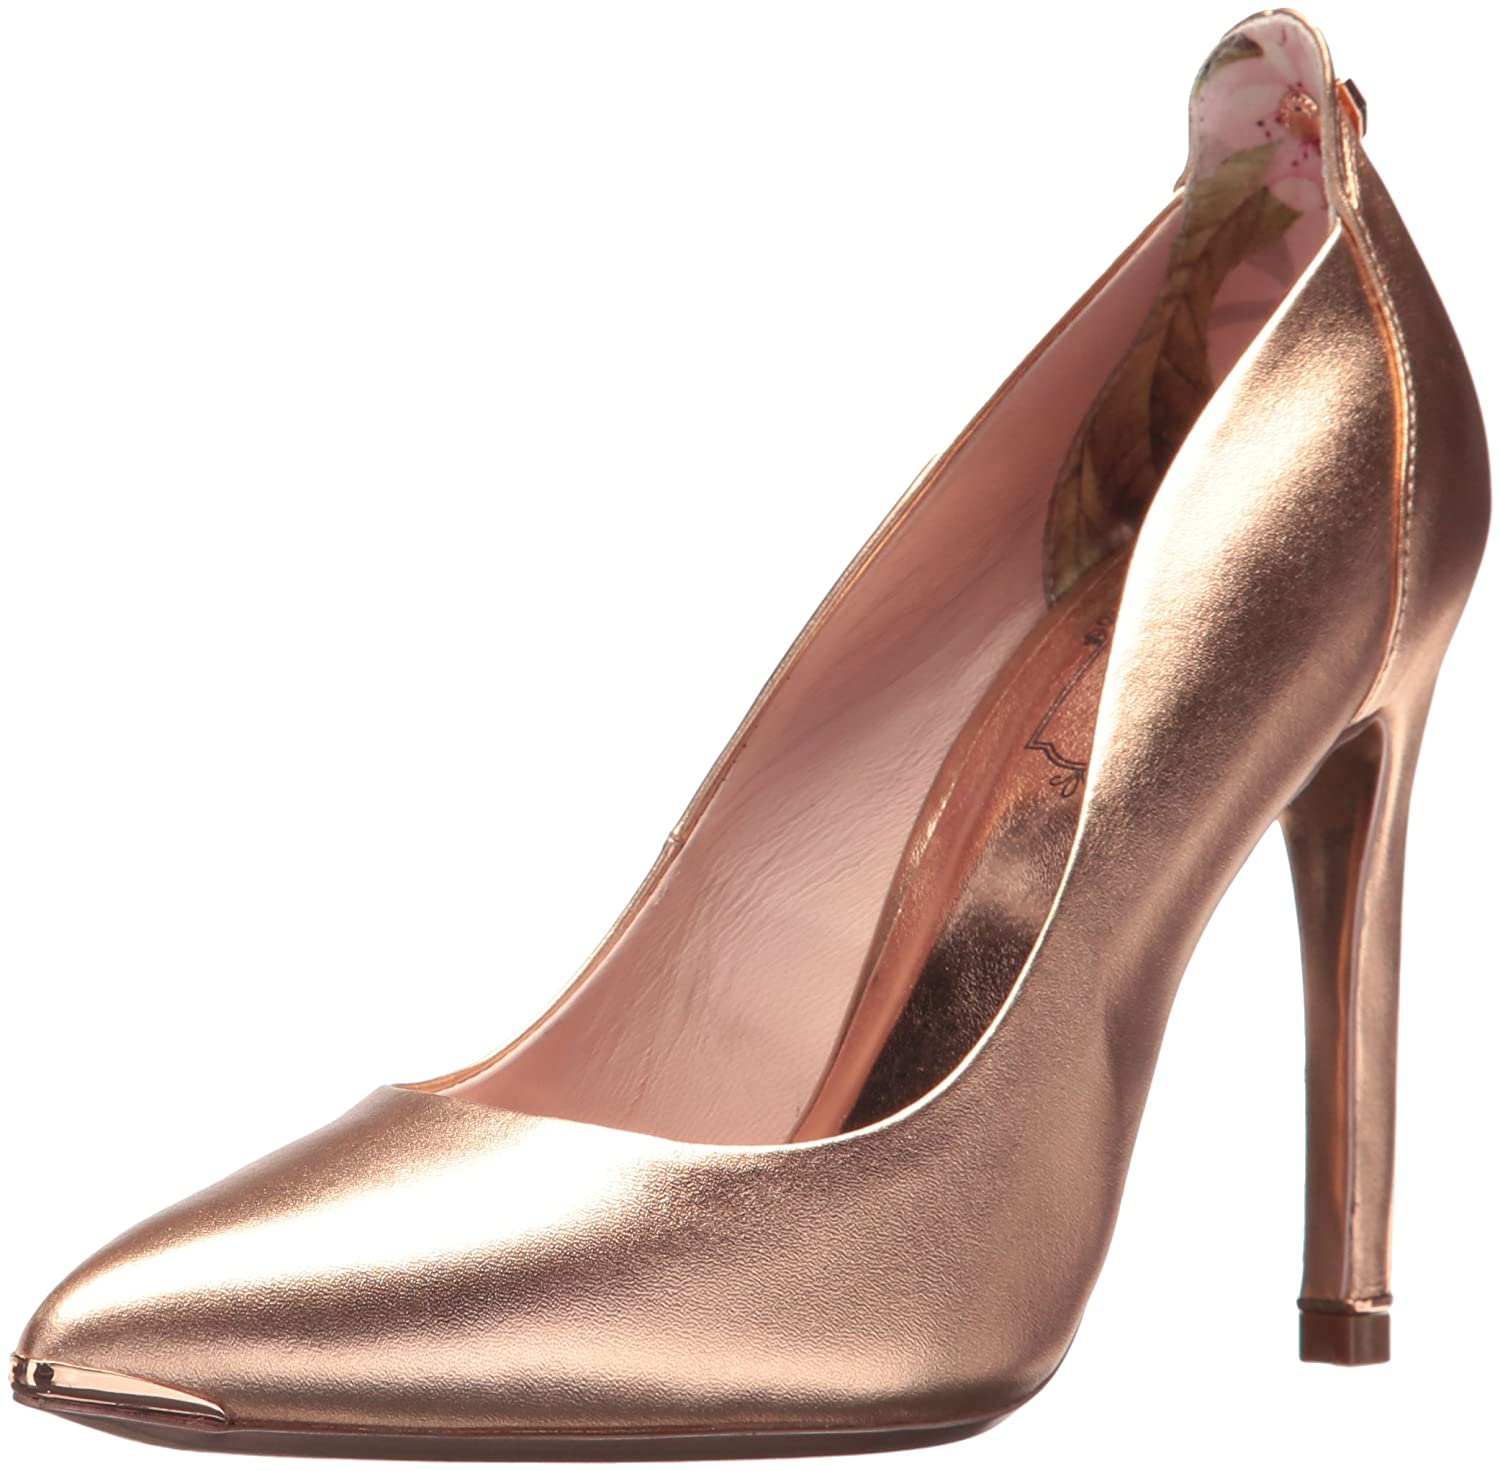 Ted Baker Women's Melisah Pump B071GFXCVK 11 B(M) US|Rose Gold